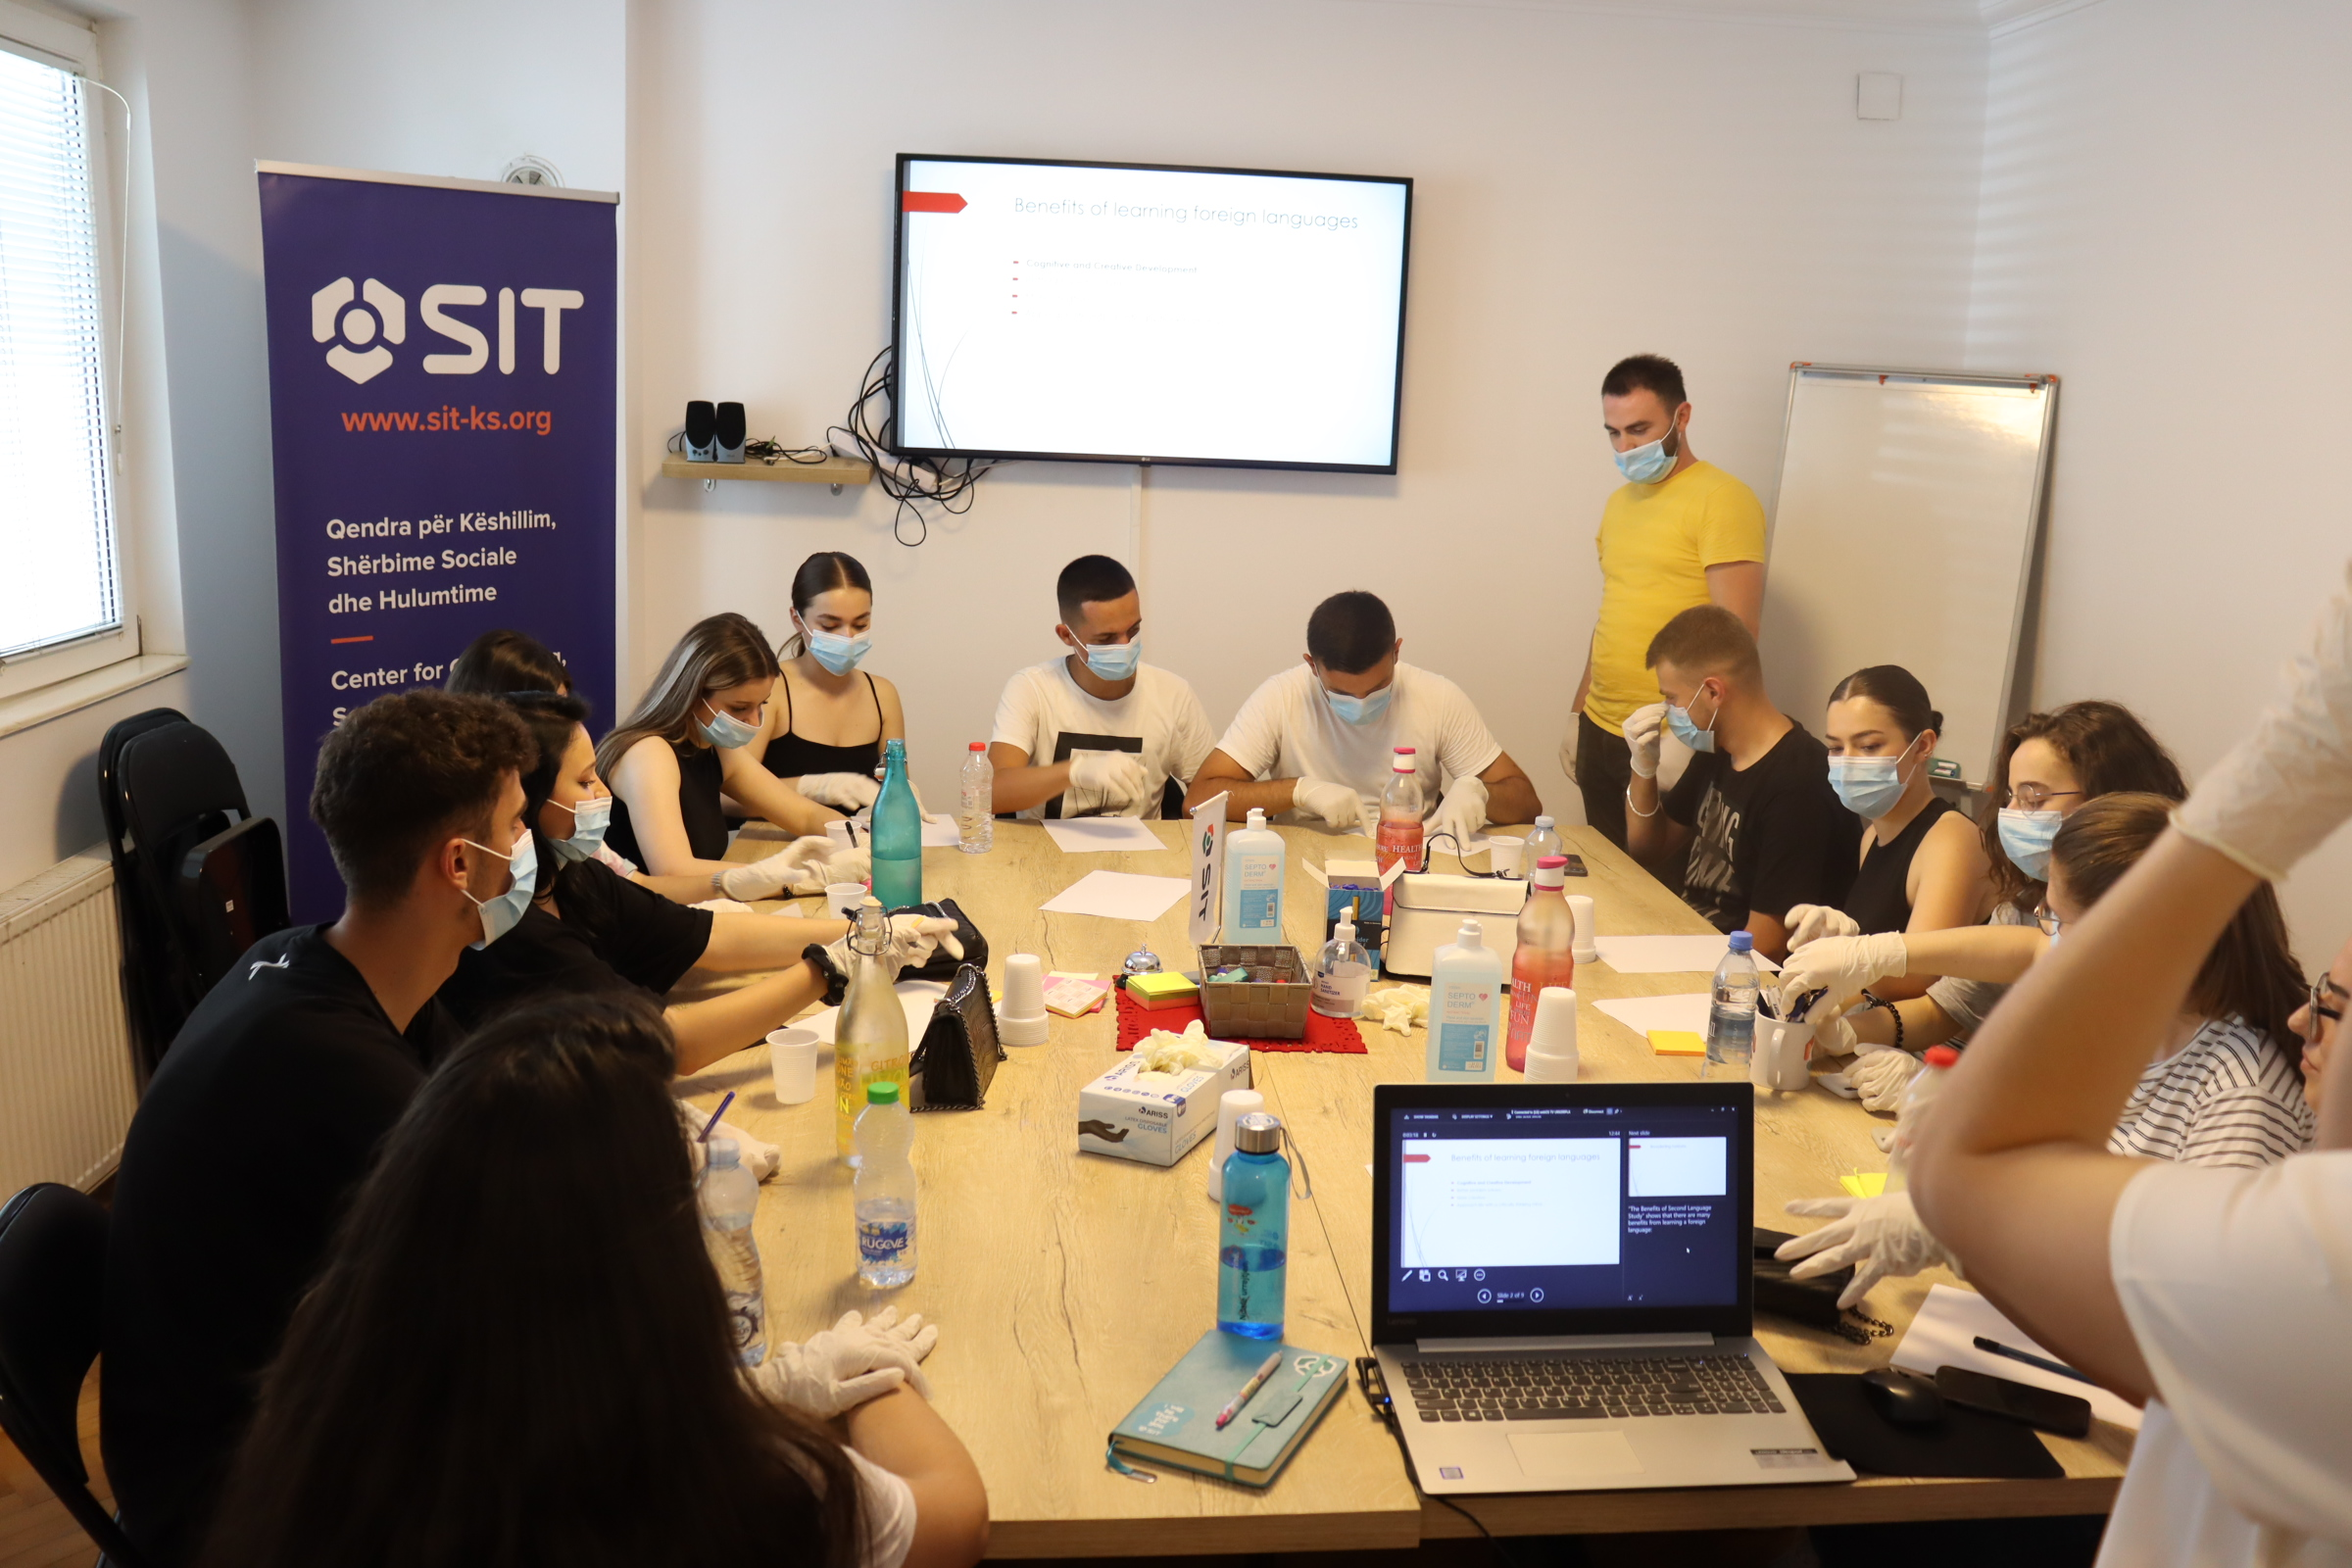 """SIT: """"Enhancing Conflict-Management Skills of Youth"""" Through Joint Activities and Workshops"""